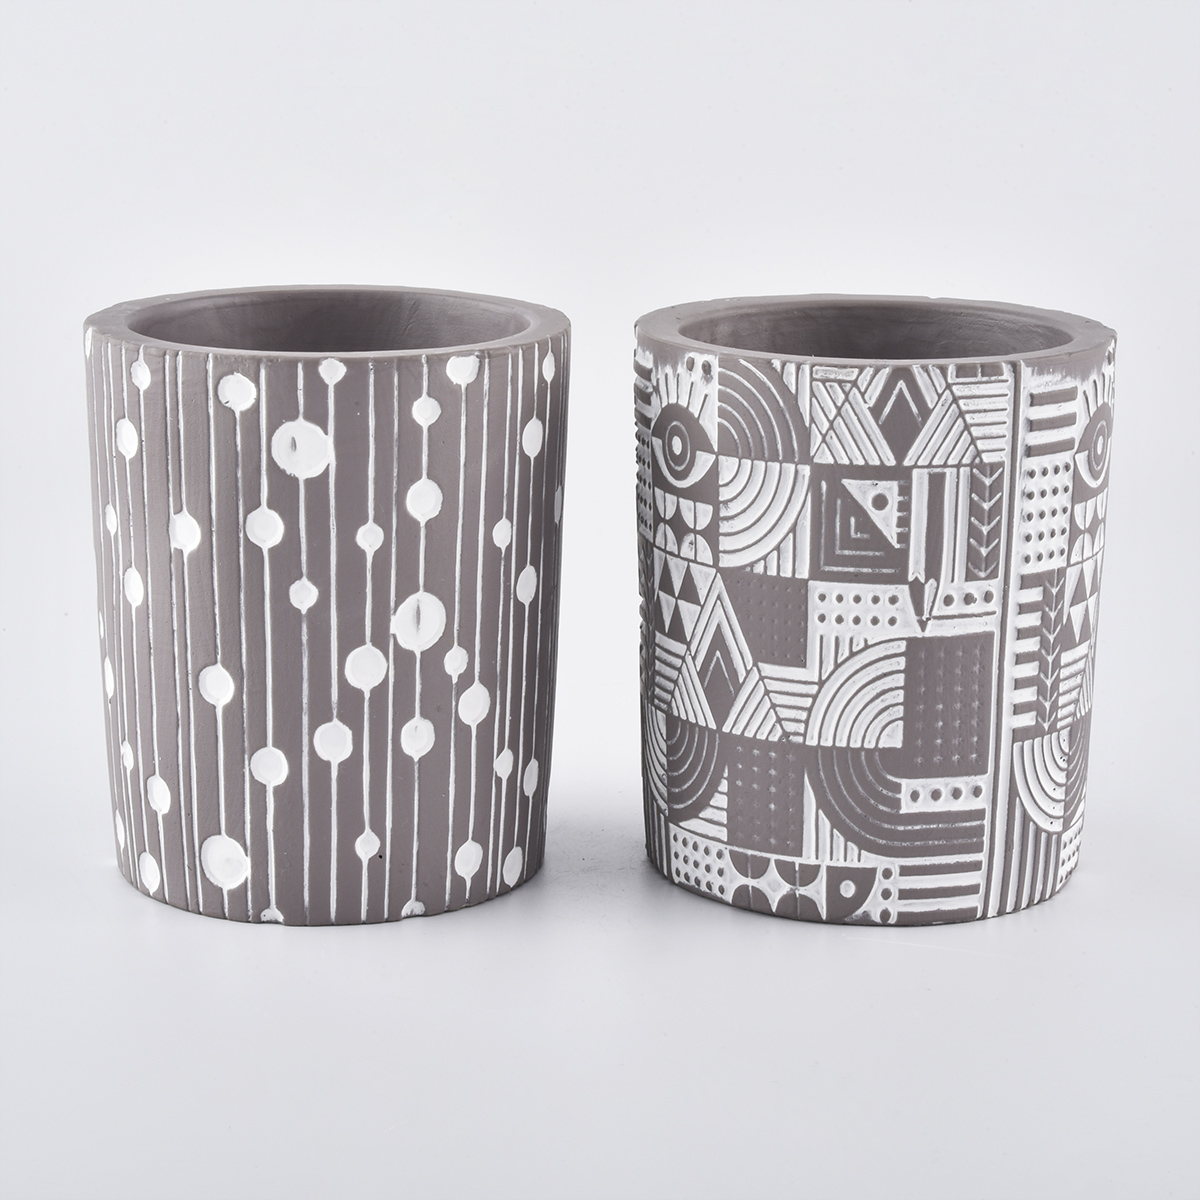 new arrival concrete candle jars from Sunny Glassware